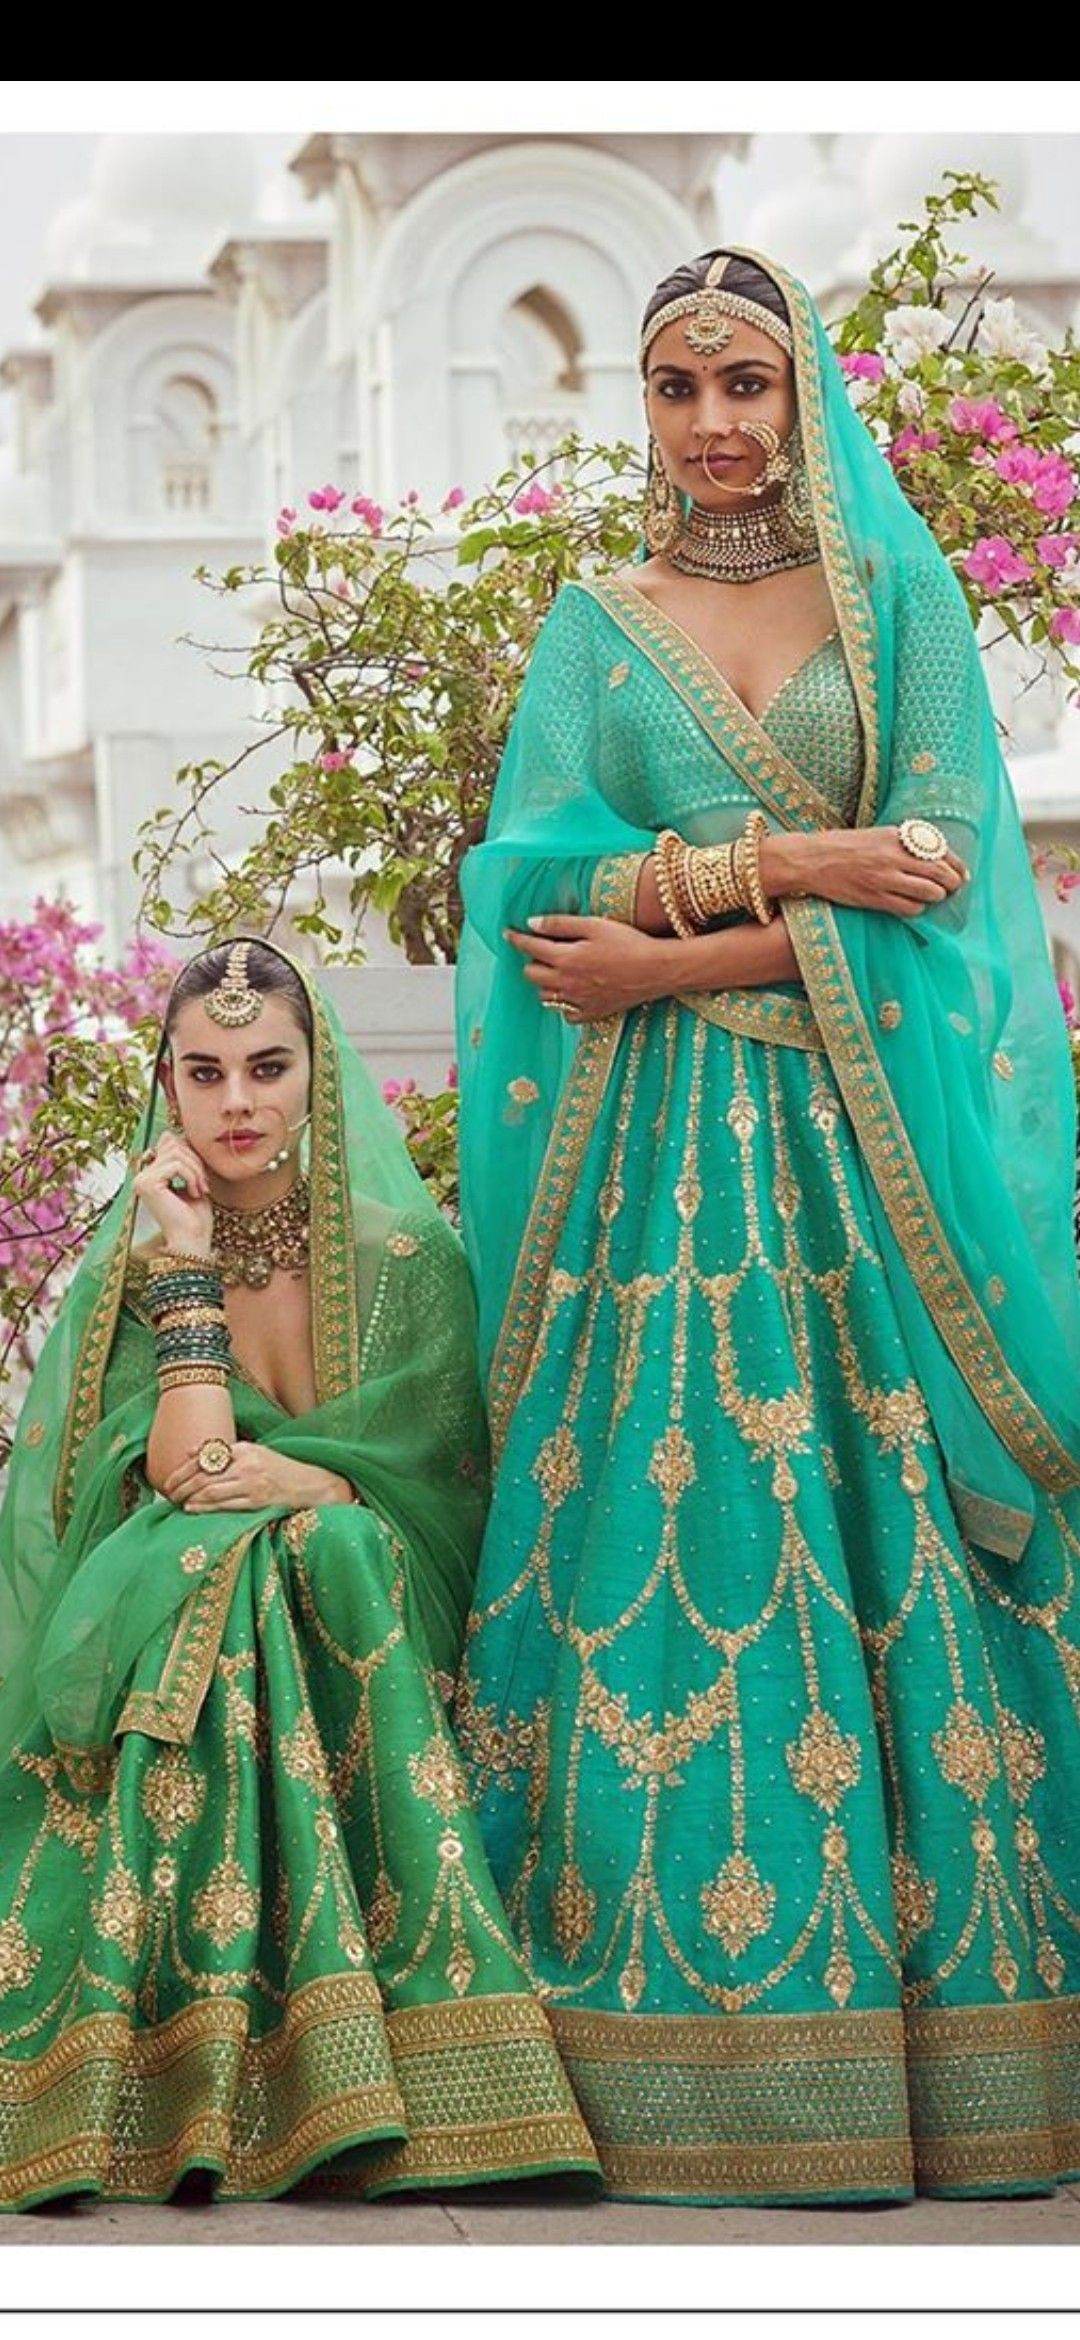 Pin by Divya Saini on Indian Attire... | Bridal outfits ...